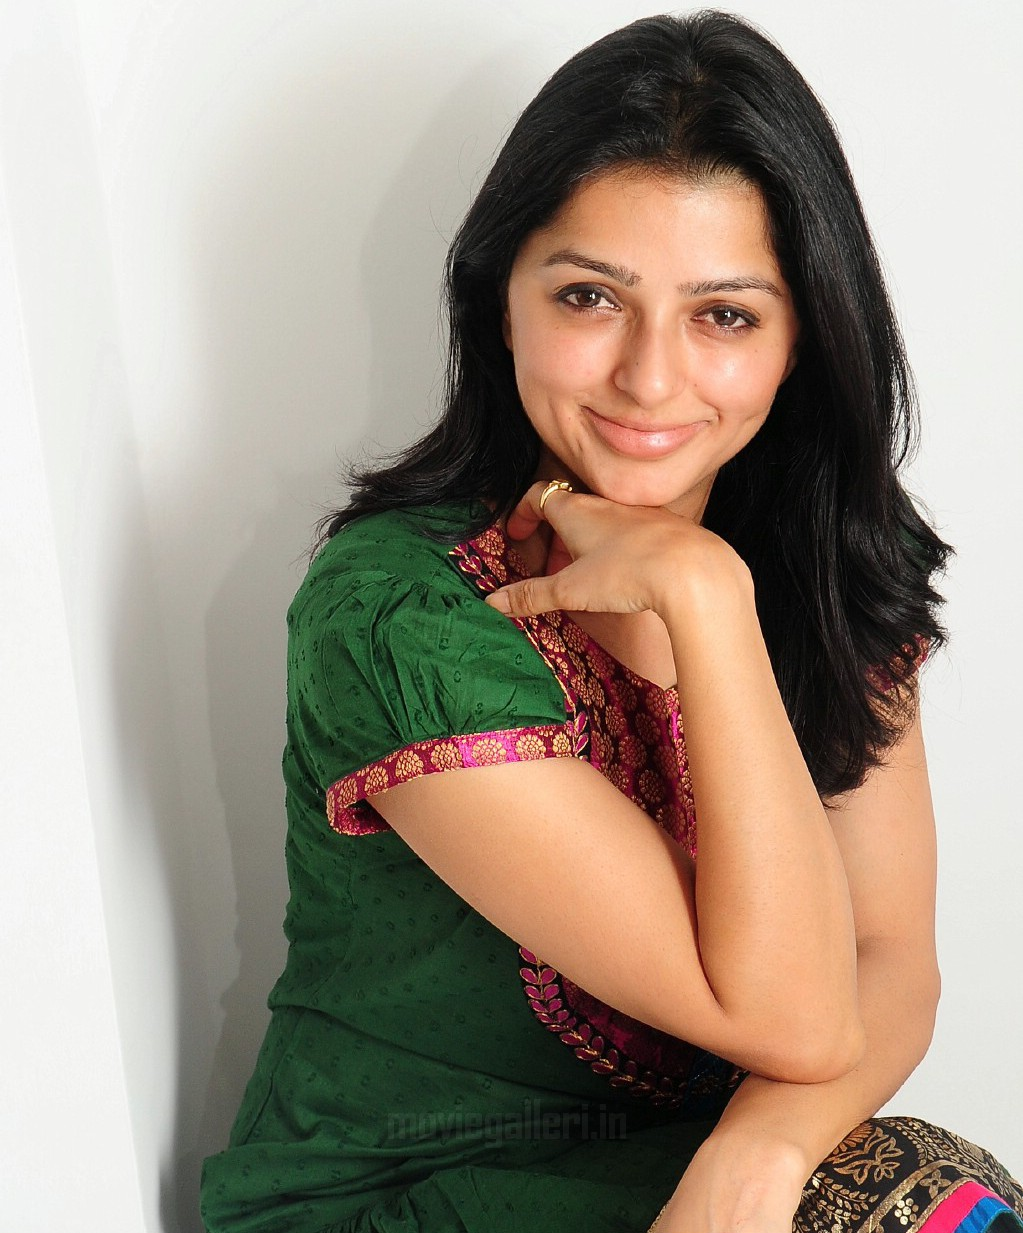 Bhojpuri, Telugu, Tamil, Hindi Film Actress Bhumika Chawla wikipedia, Biography, Age, Bhumika Chawla Age, boyfriend, filmography, movie name list wiki, upcoming film, latest release film, photo, news, hot image